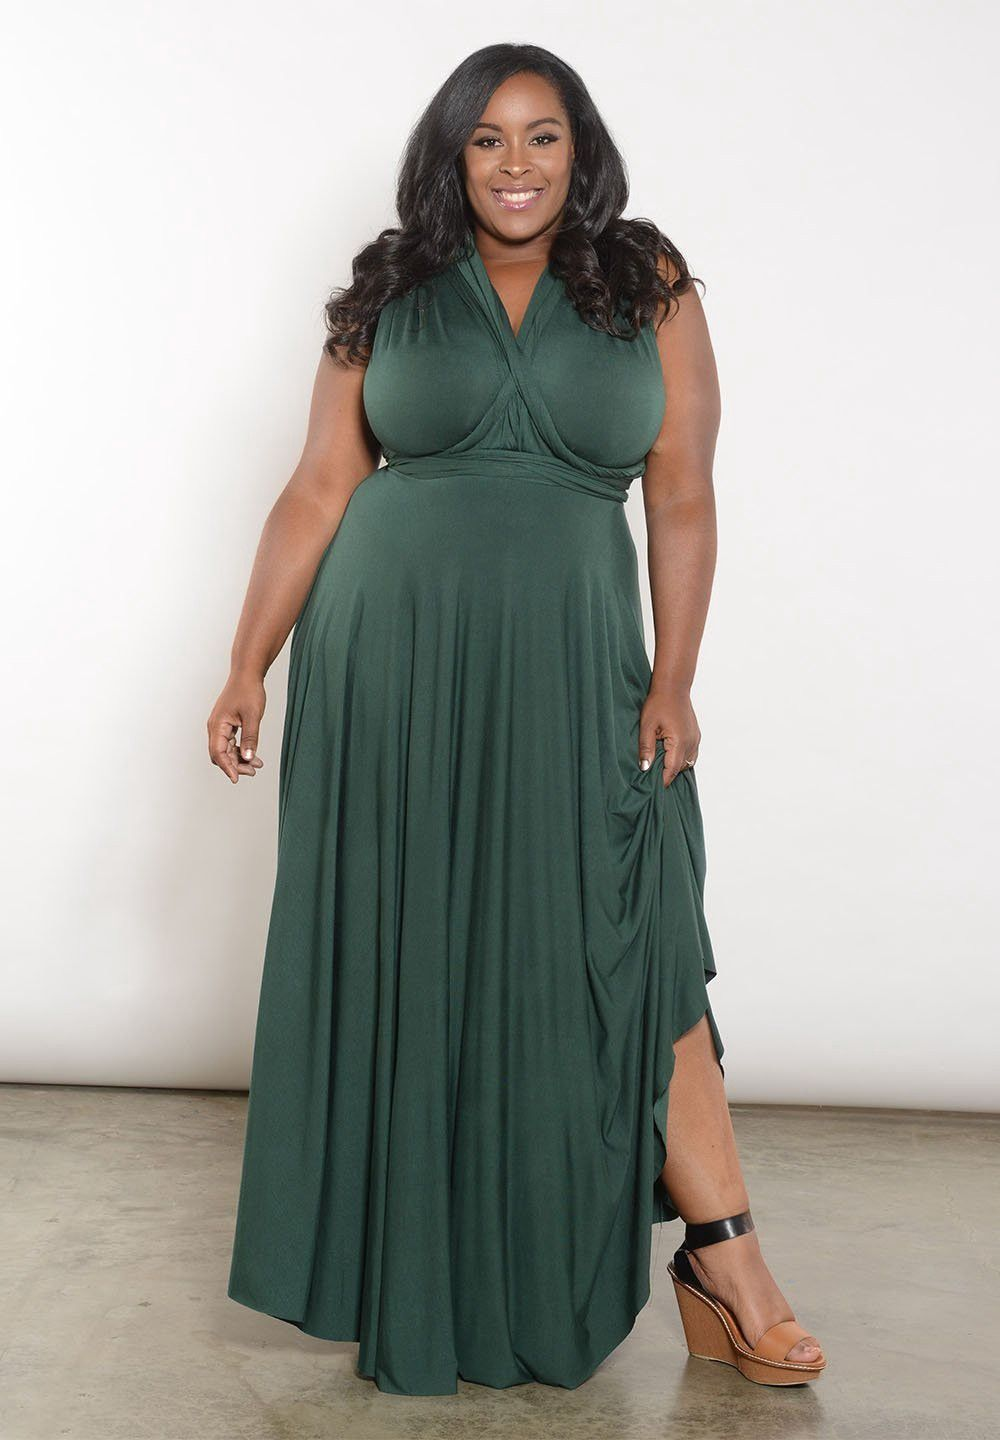 296aaf7a623 ... Size 10 And Up. Sealed With A Kiss Eternity Maxi Convertible Dress -  1X 3X Green